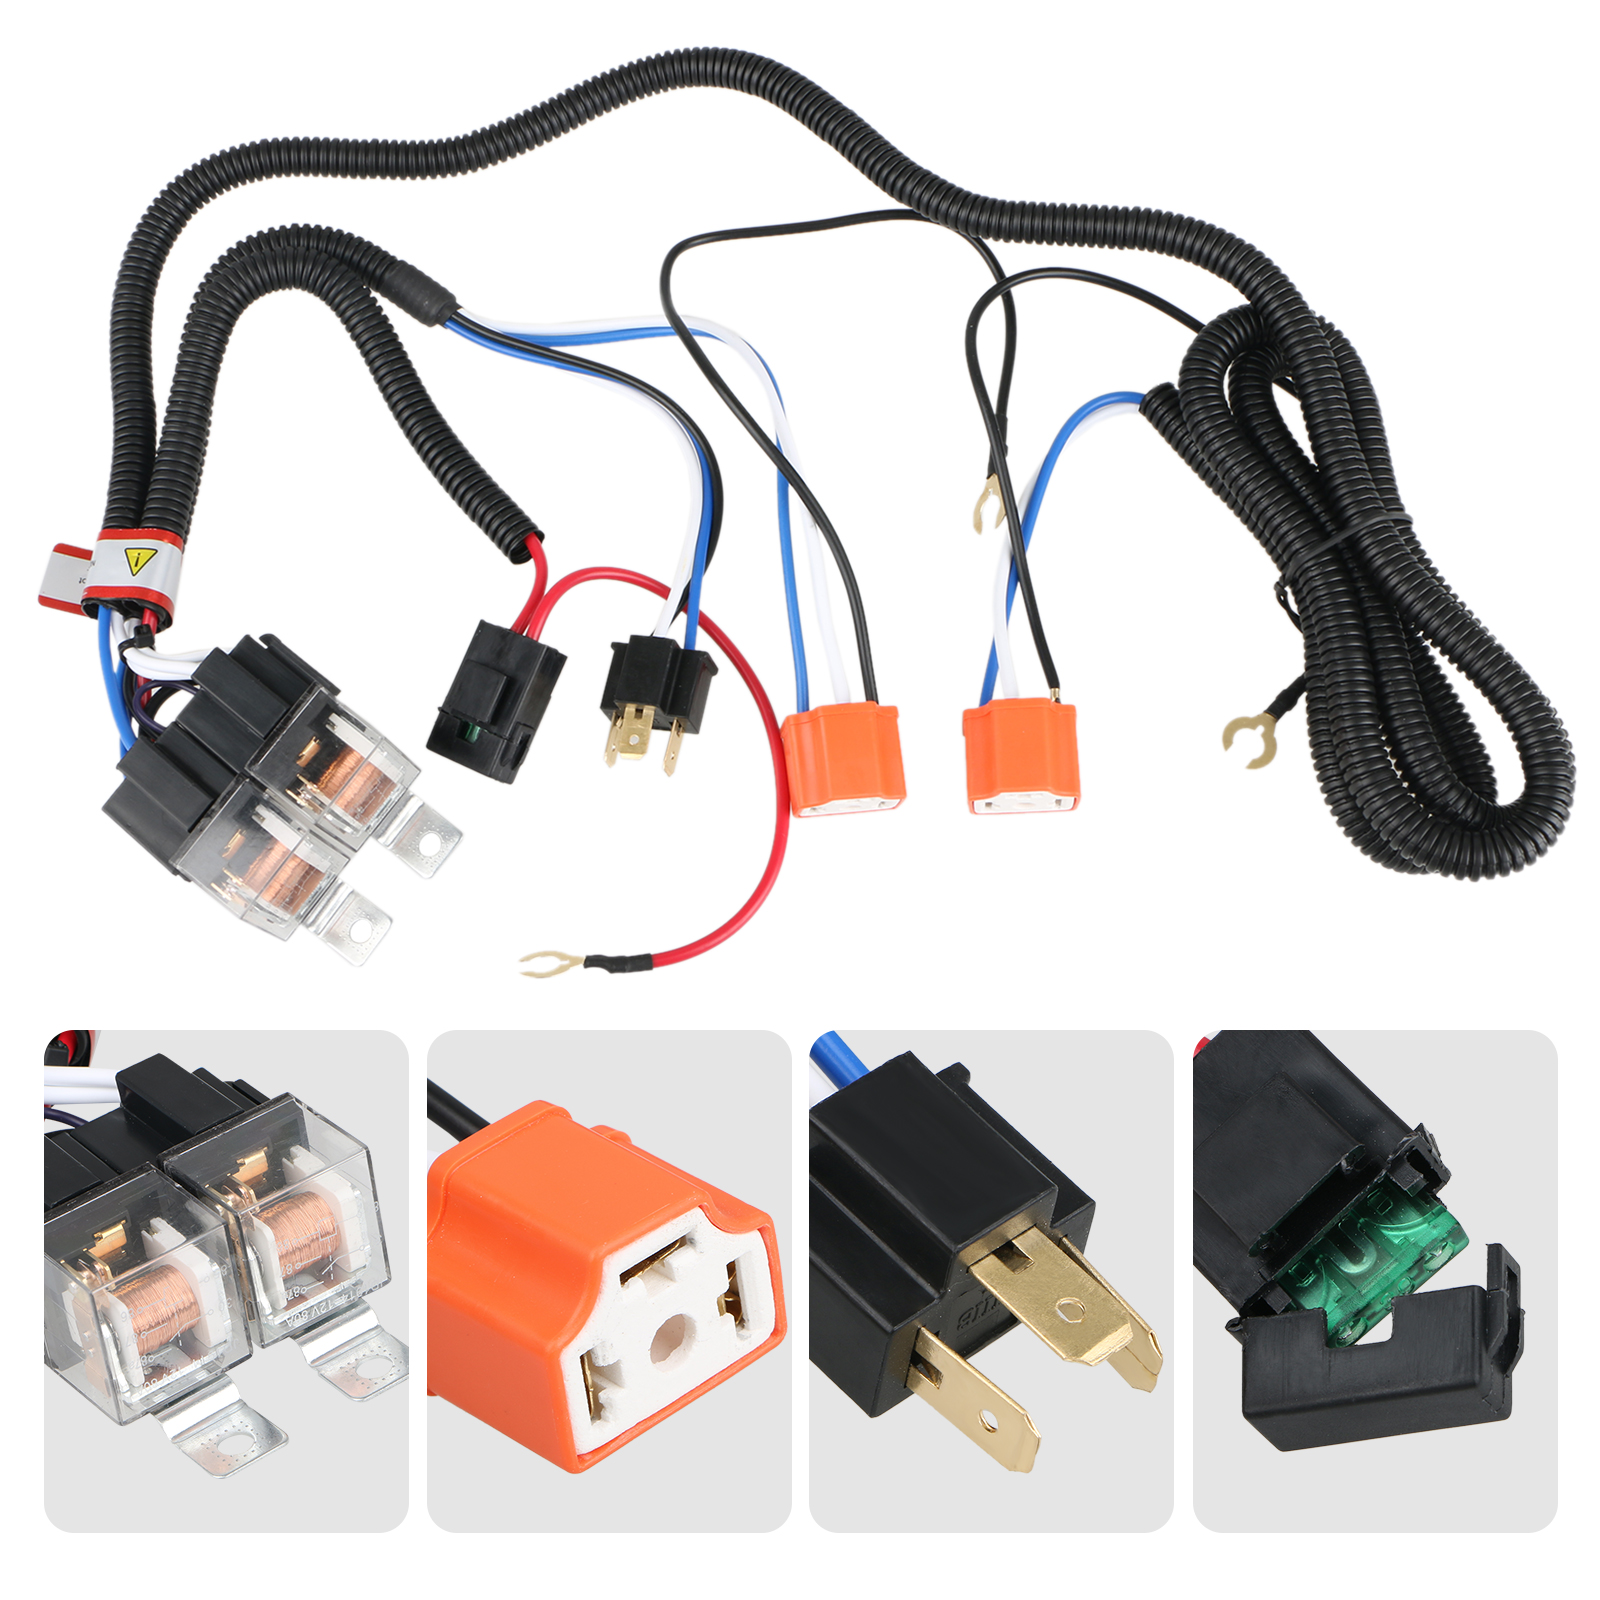 small resolution of tsv 1set 2 headlight harness h4 headlight relay harness h6054 h4 9003 bulb wiring h4 headlight relay wiring harness